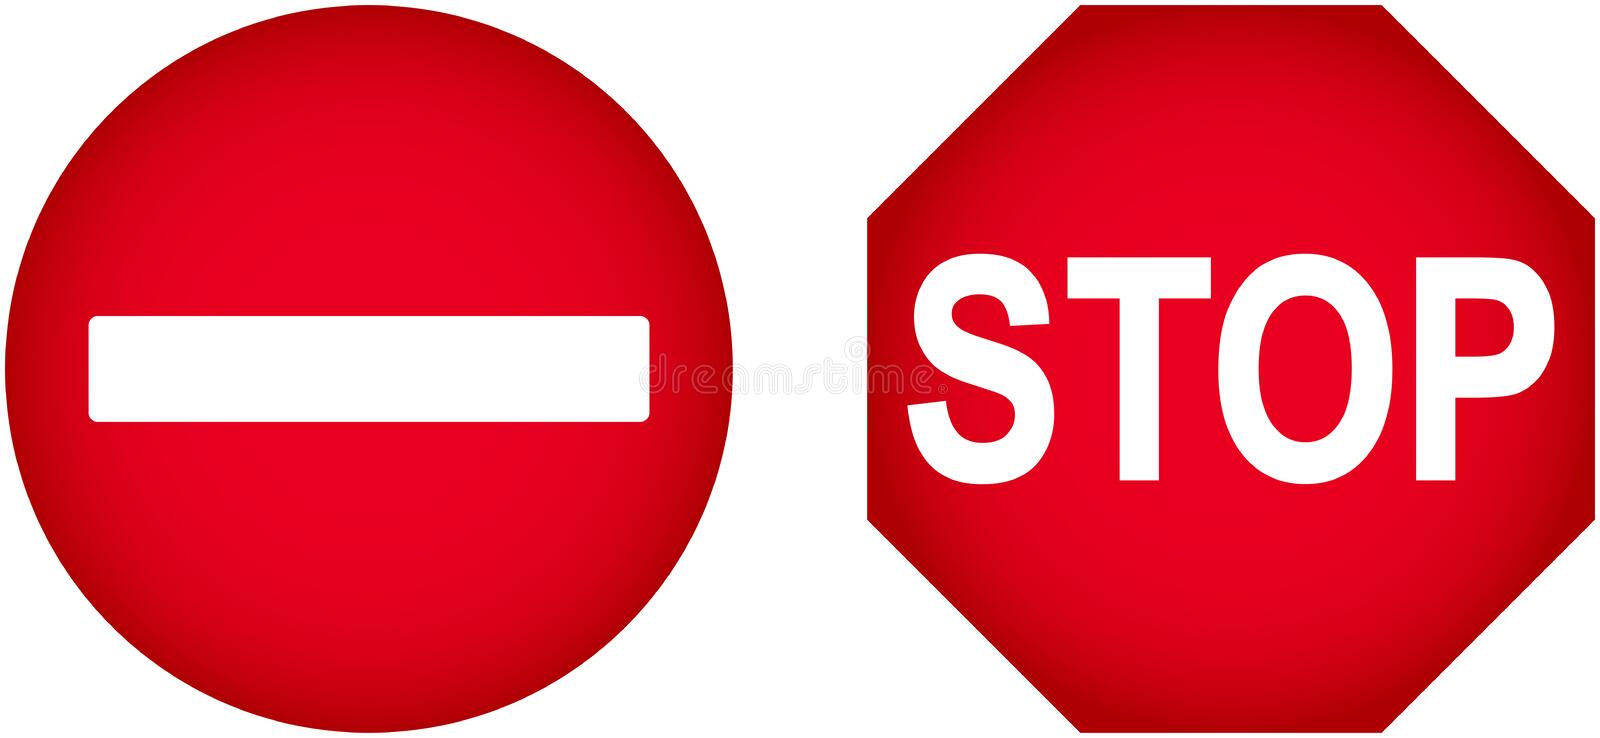 No Entry Sign. Illustration Of No Entry And Stop Traffic Signs Isolated On White vector illustration